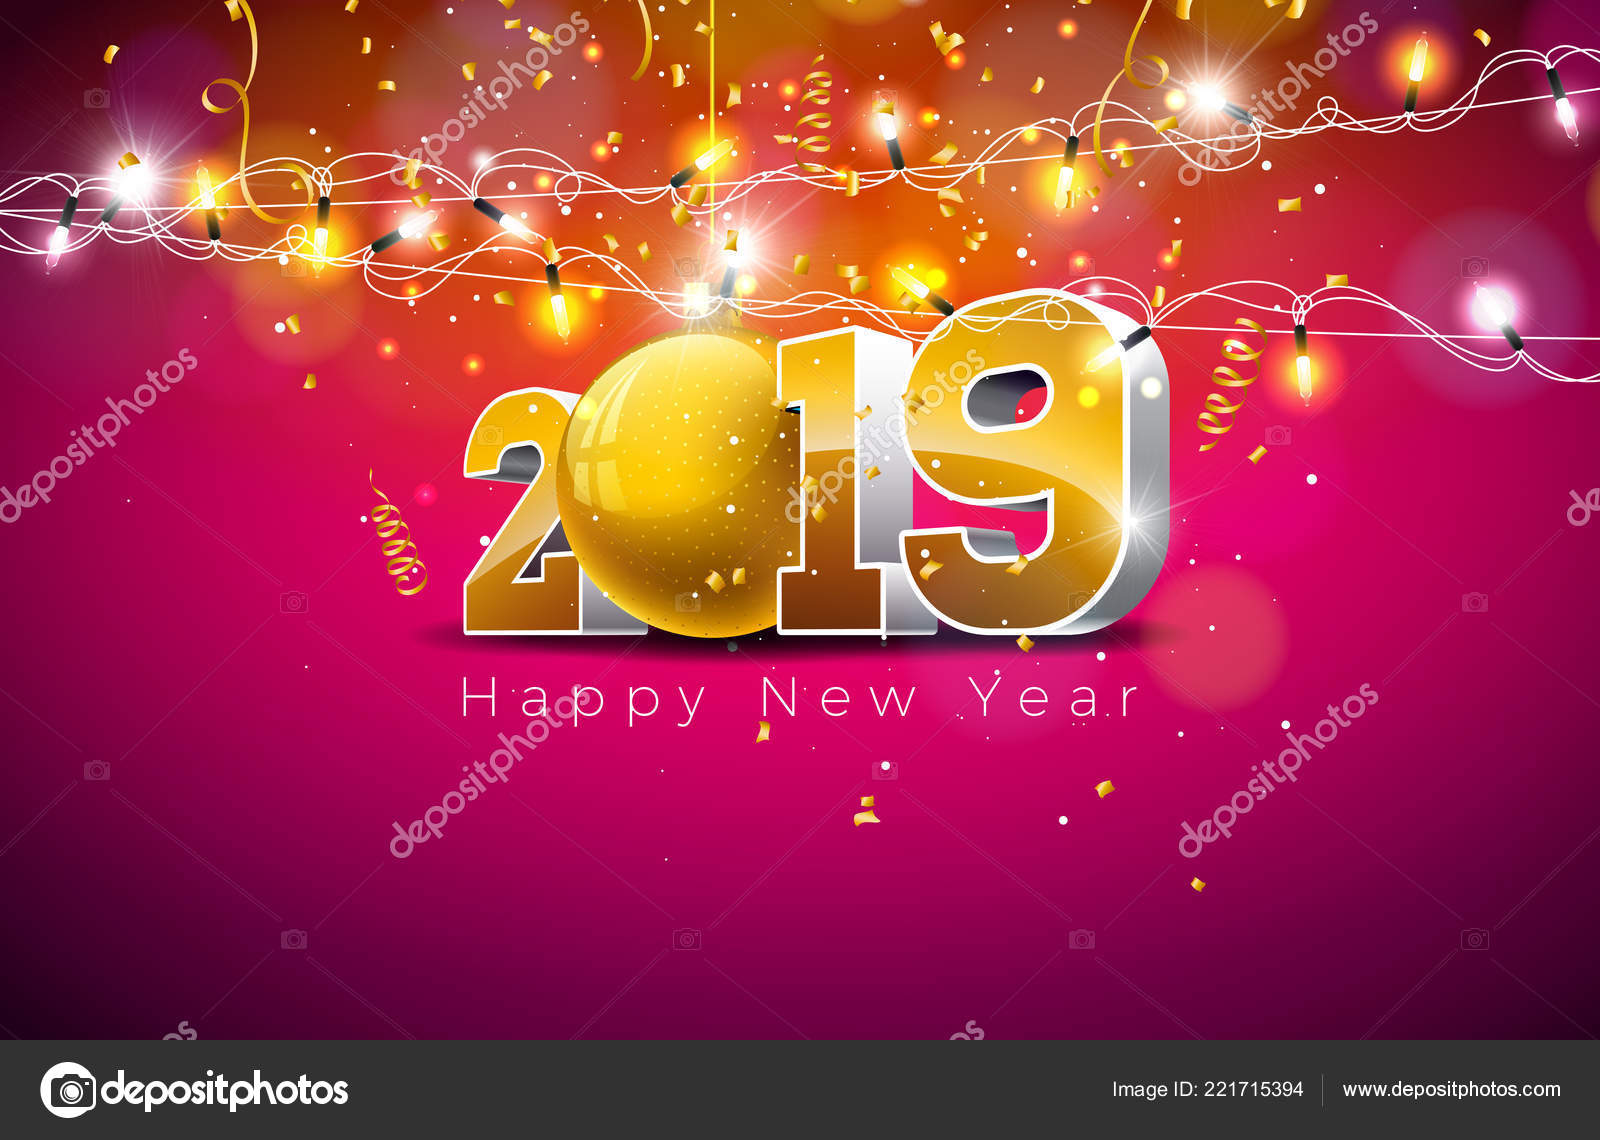 2019 Happy New Year Illustration With 3d Gold Number Christmas Ball